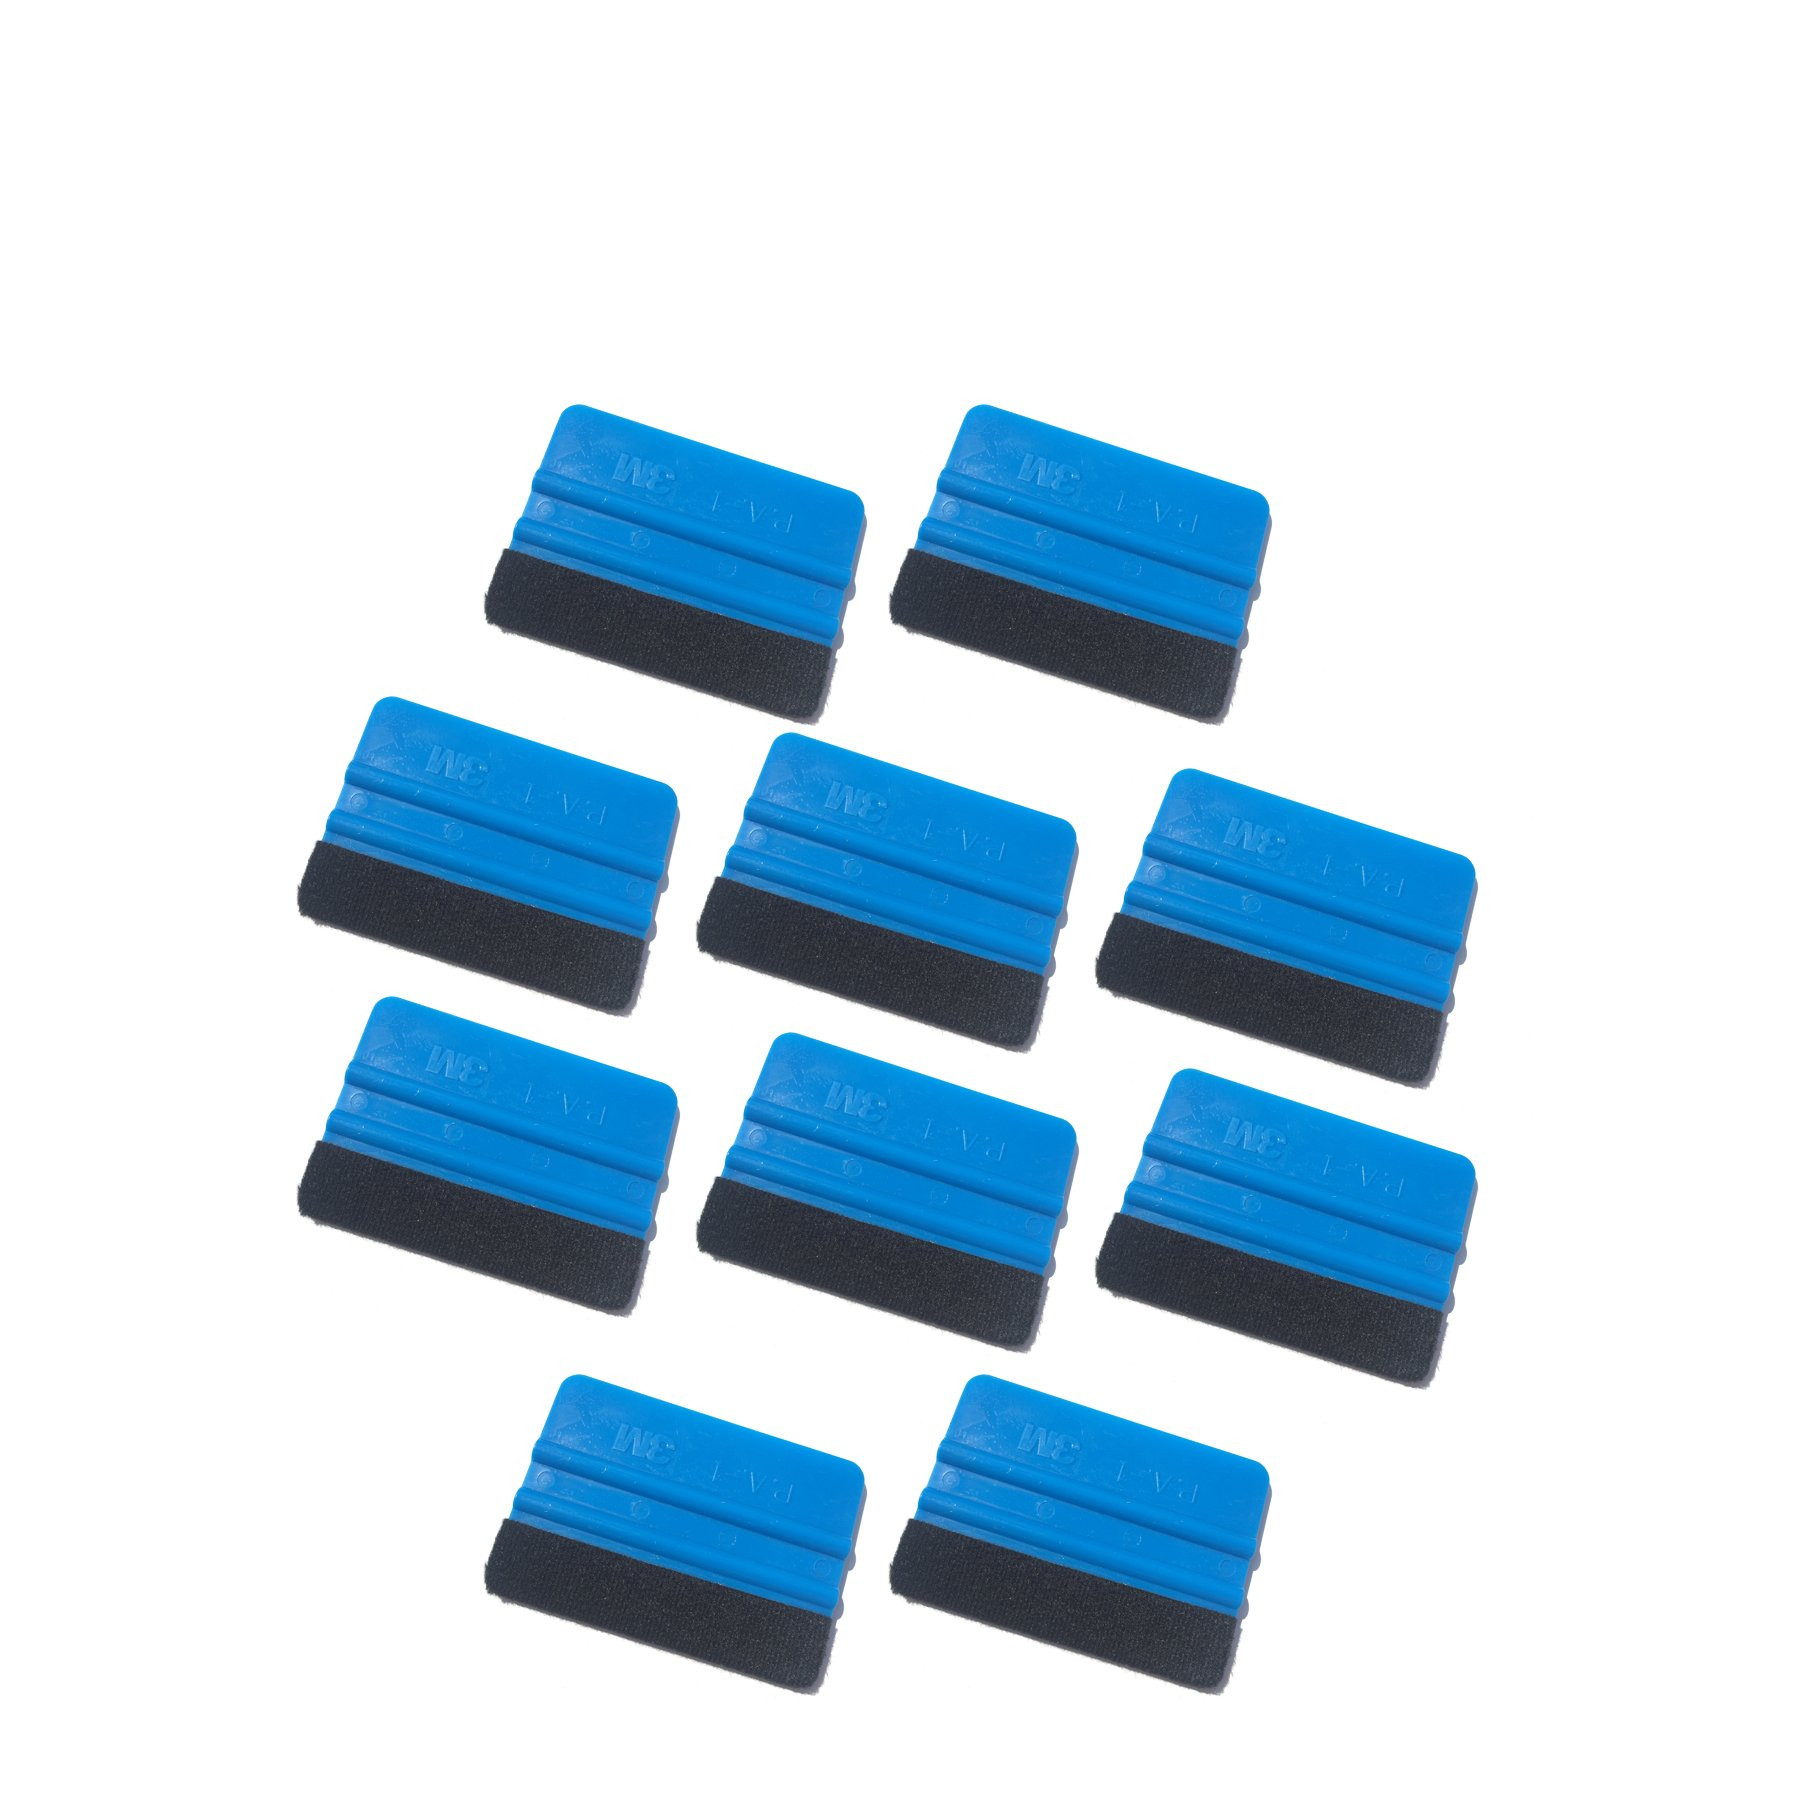 3M Felt squeegee 10 pack hand applicator tool P.A.-1 Blue